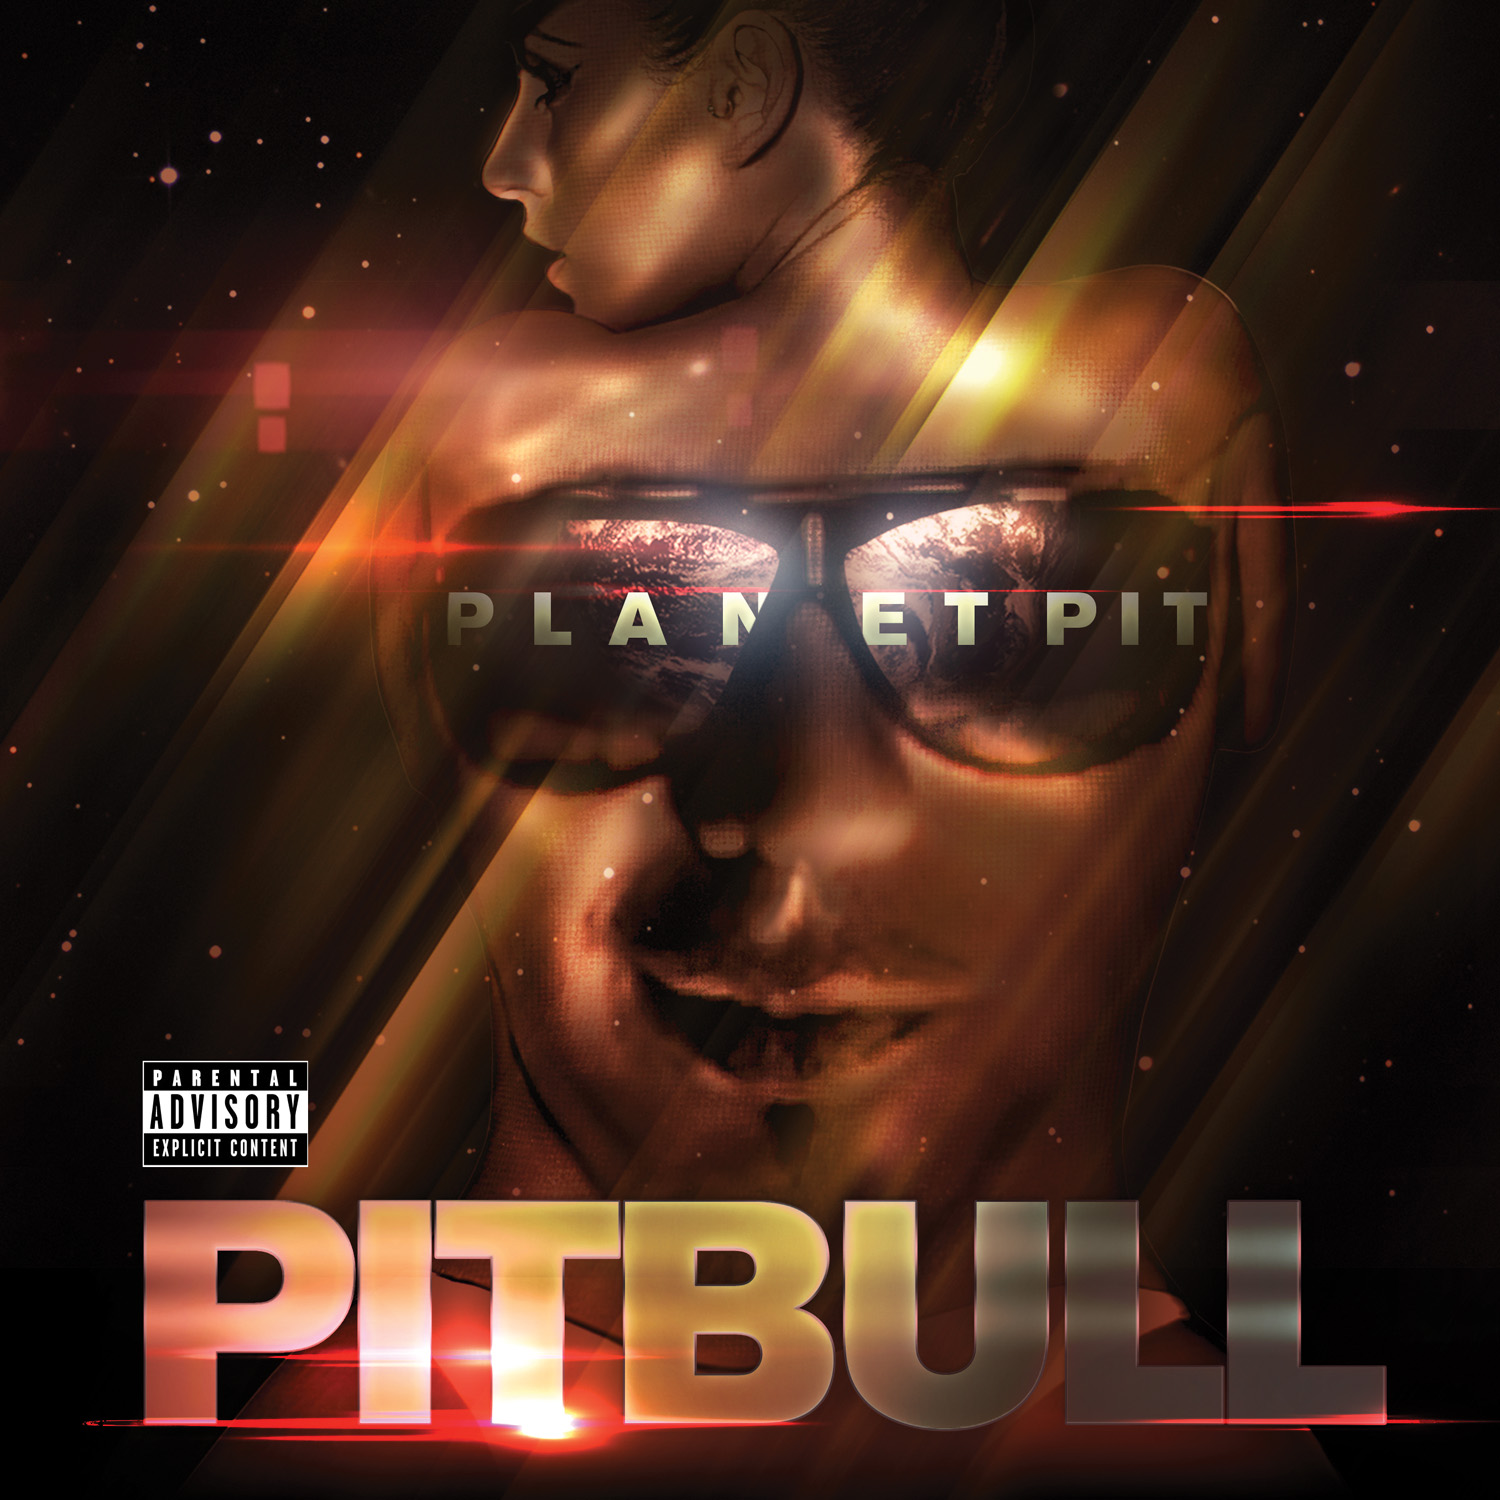 Pitbull – Planet Pit (Deluxe Edition Download)